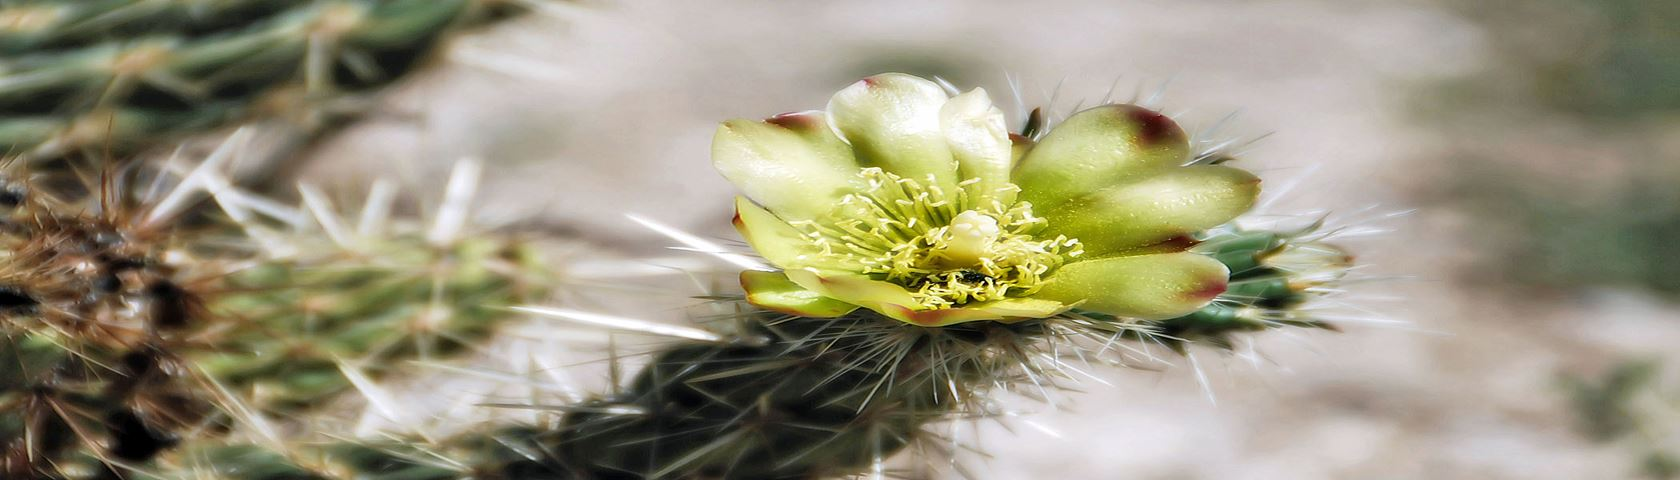 Silver Cholla Cactus Flower 2